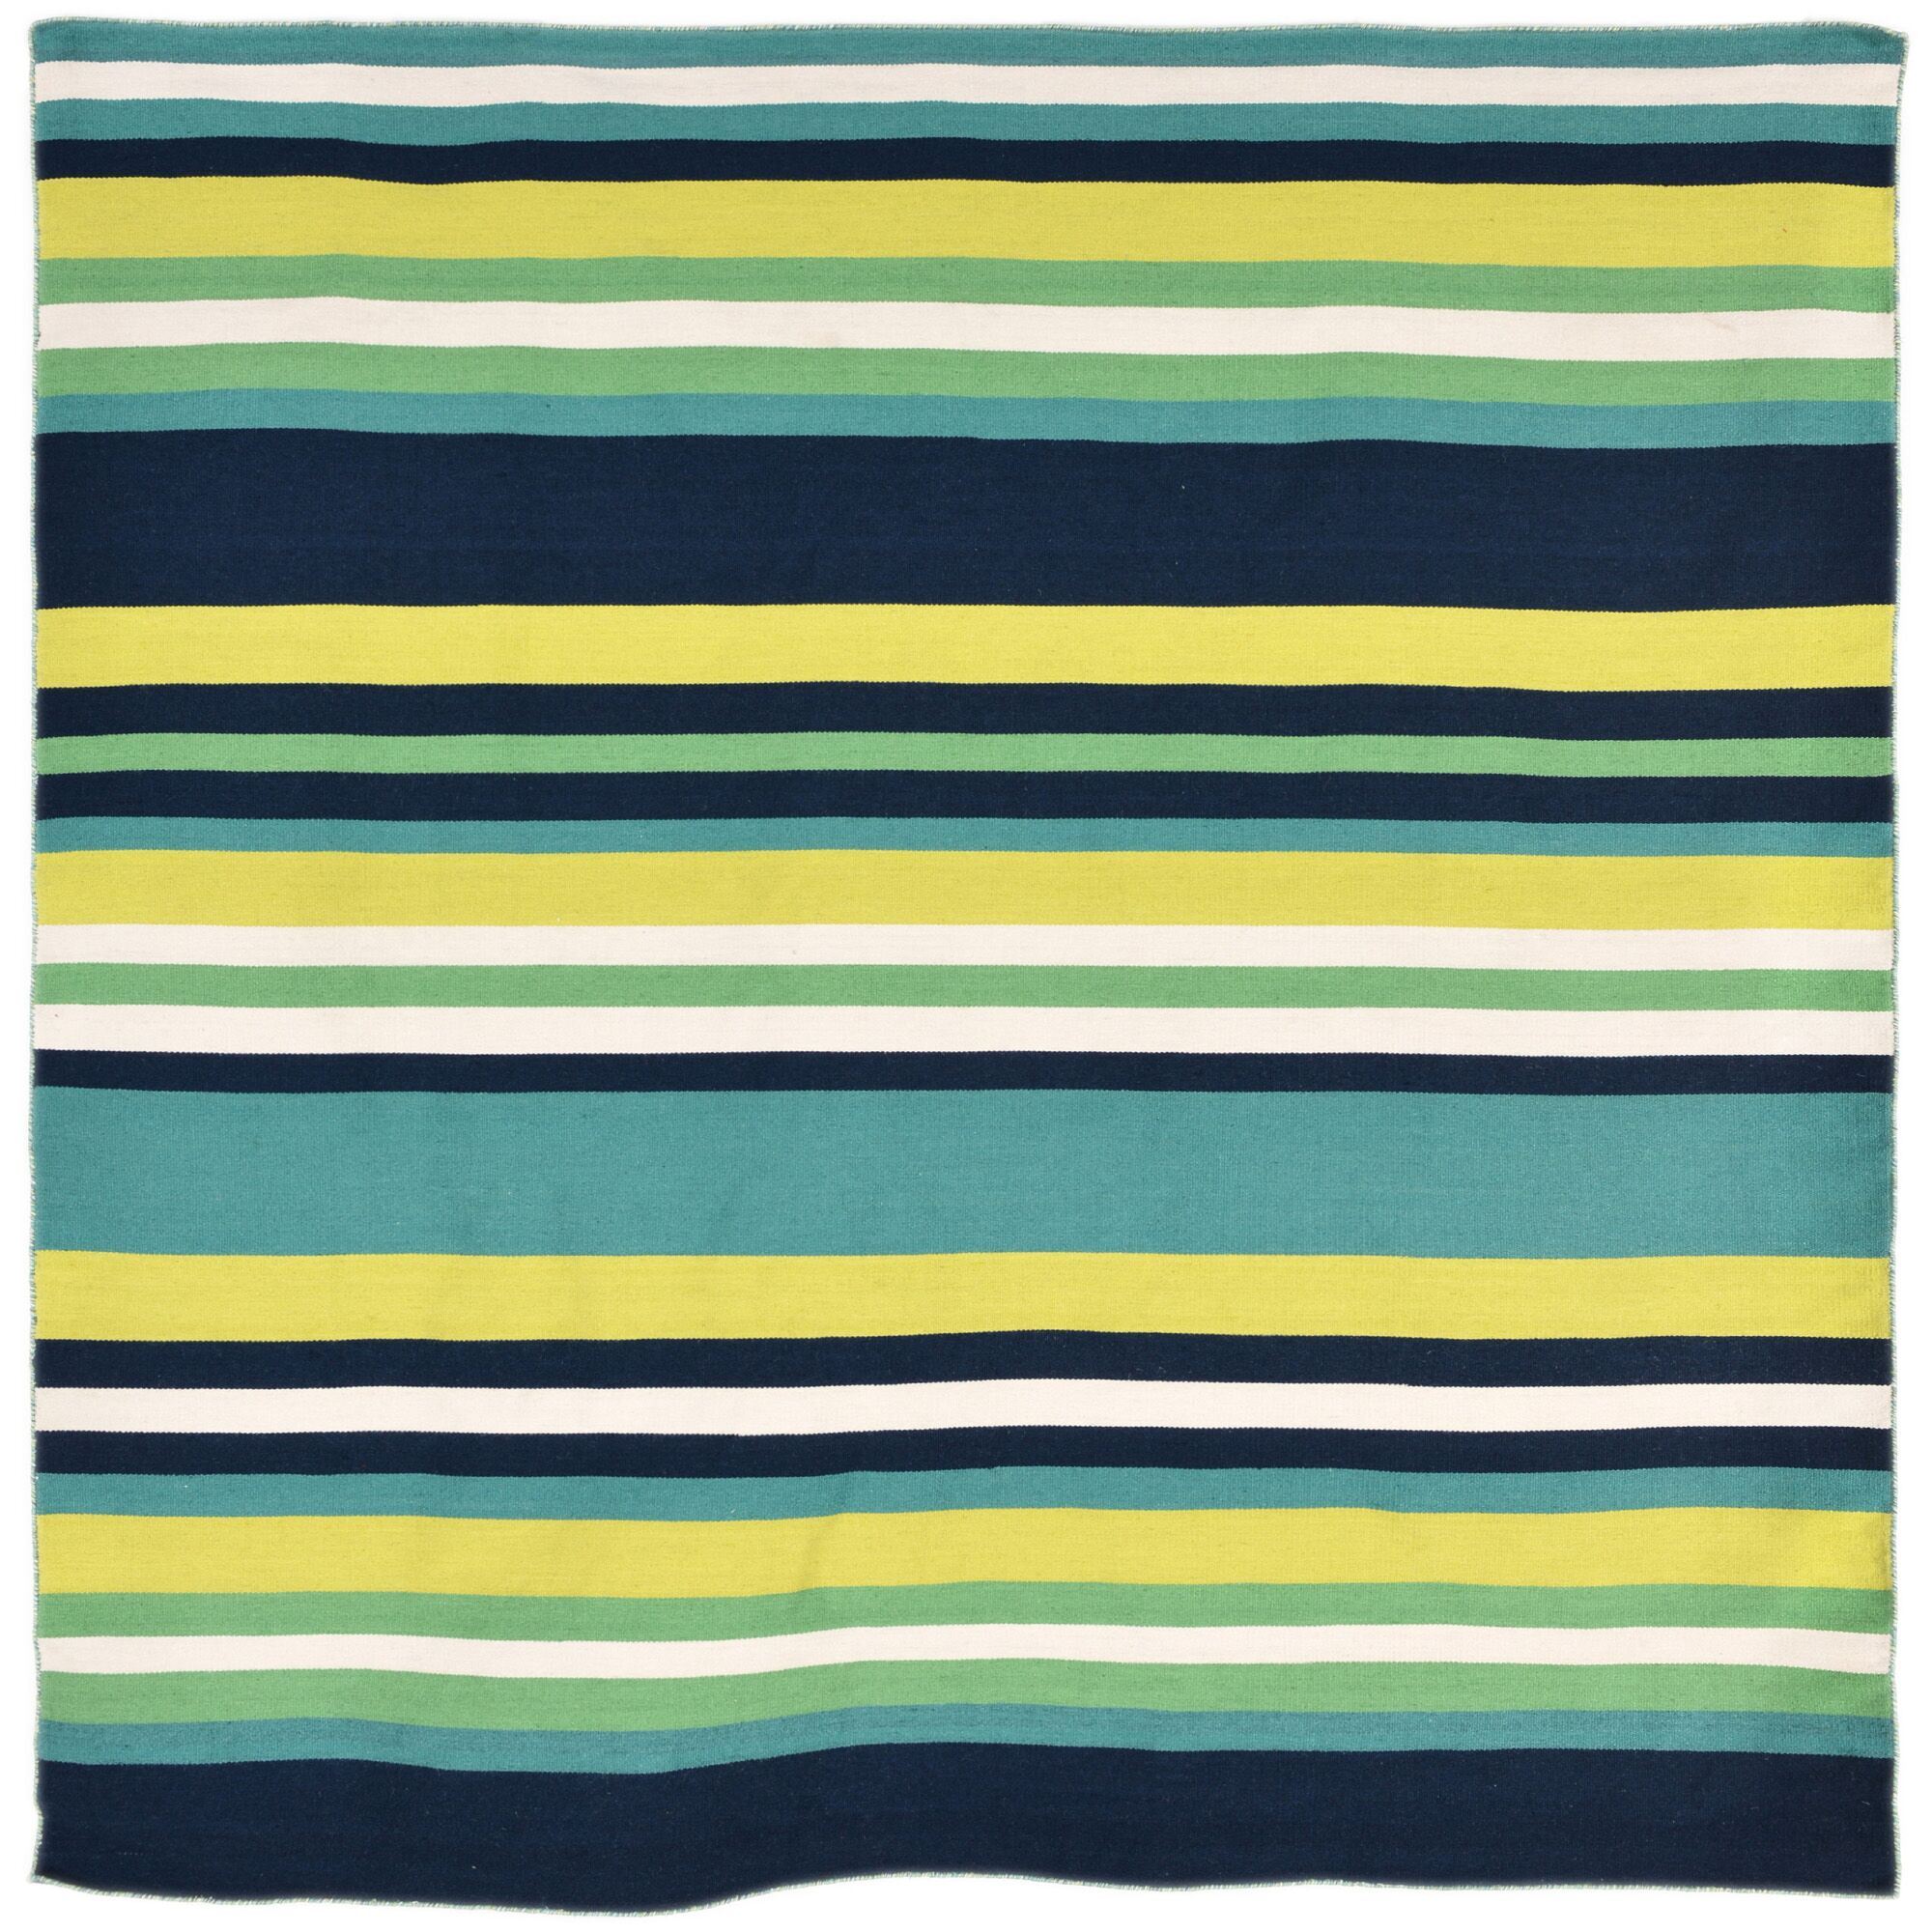 Ranier Hand-Woven Green Indoor/Outdoor Area Rug Rug Size: Square 8'